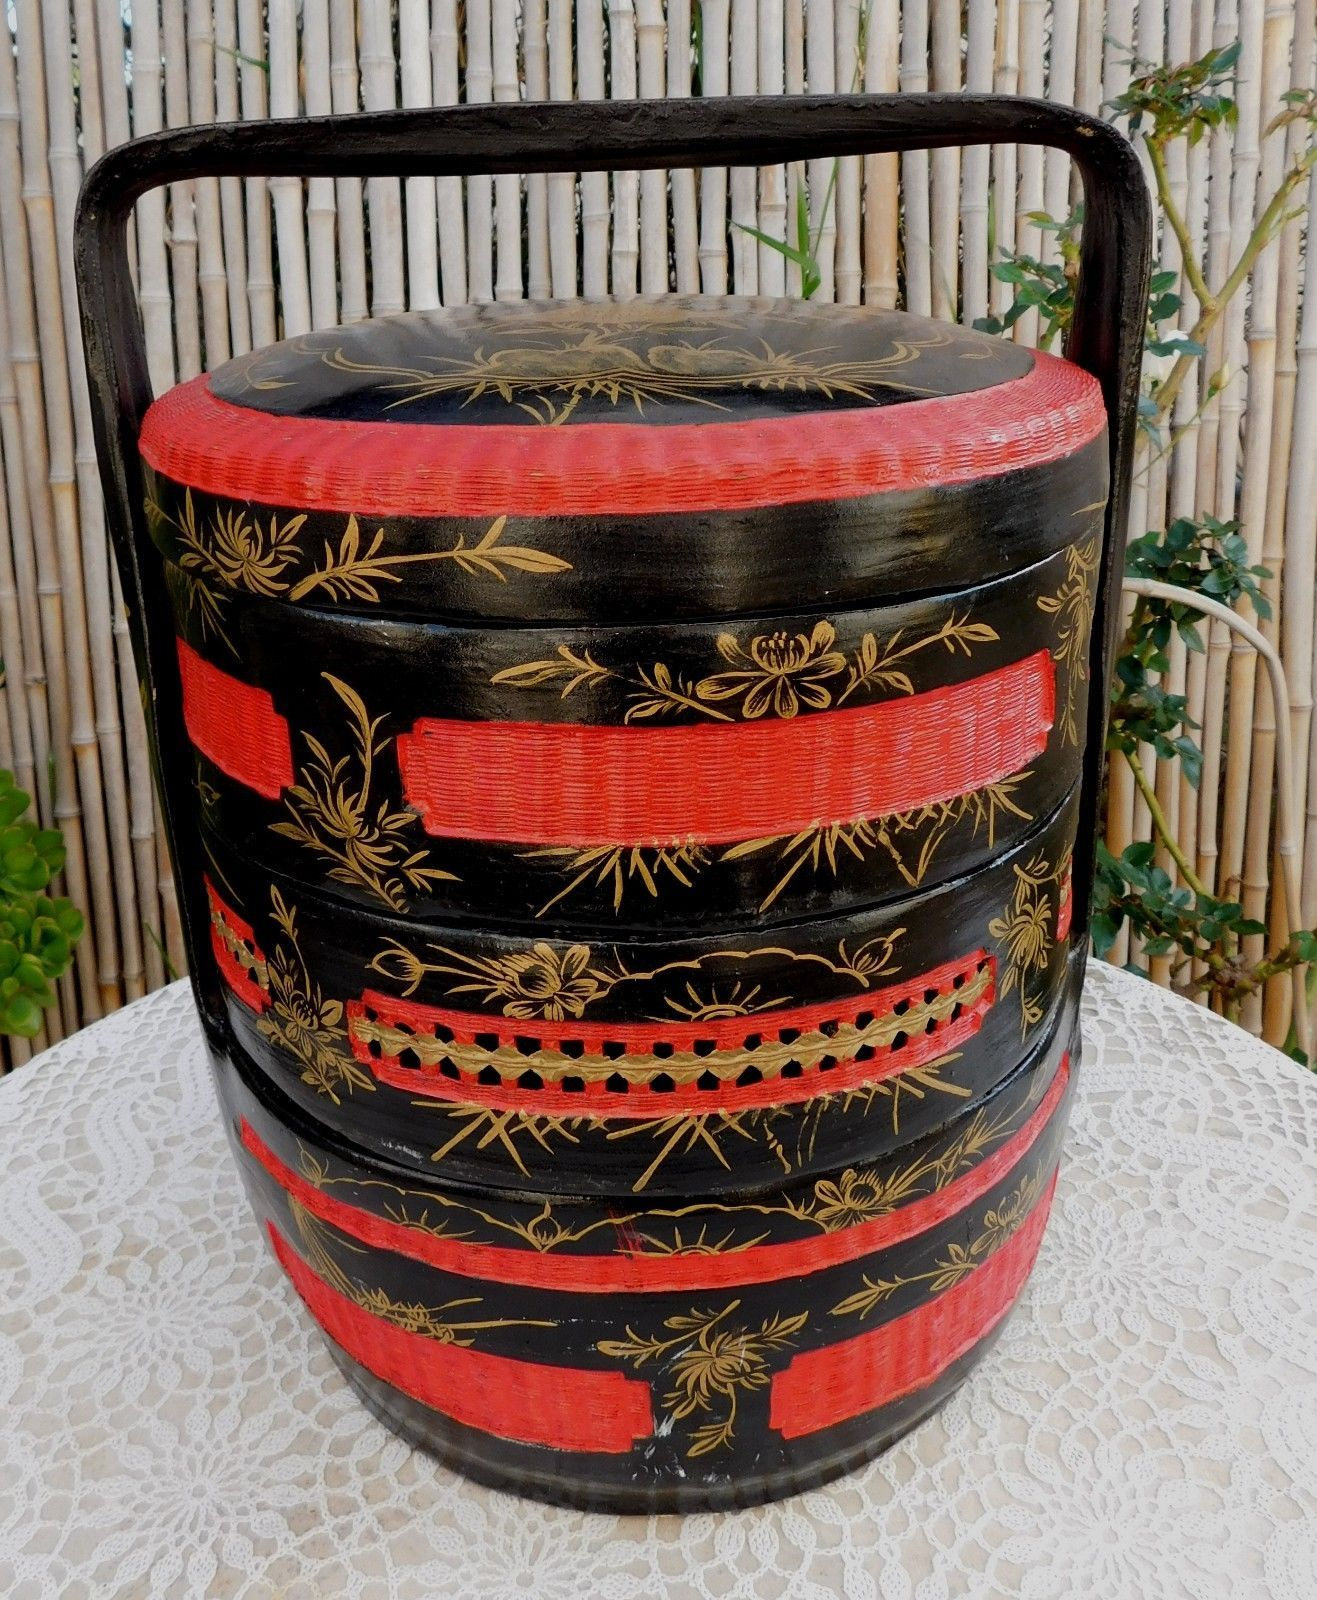 51bd2a25c Large Vintage Chinese Black Red Gold 3 Tier Staked Wedding Picnic Basket